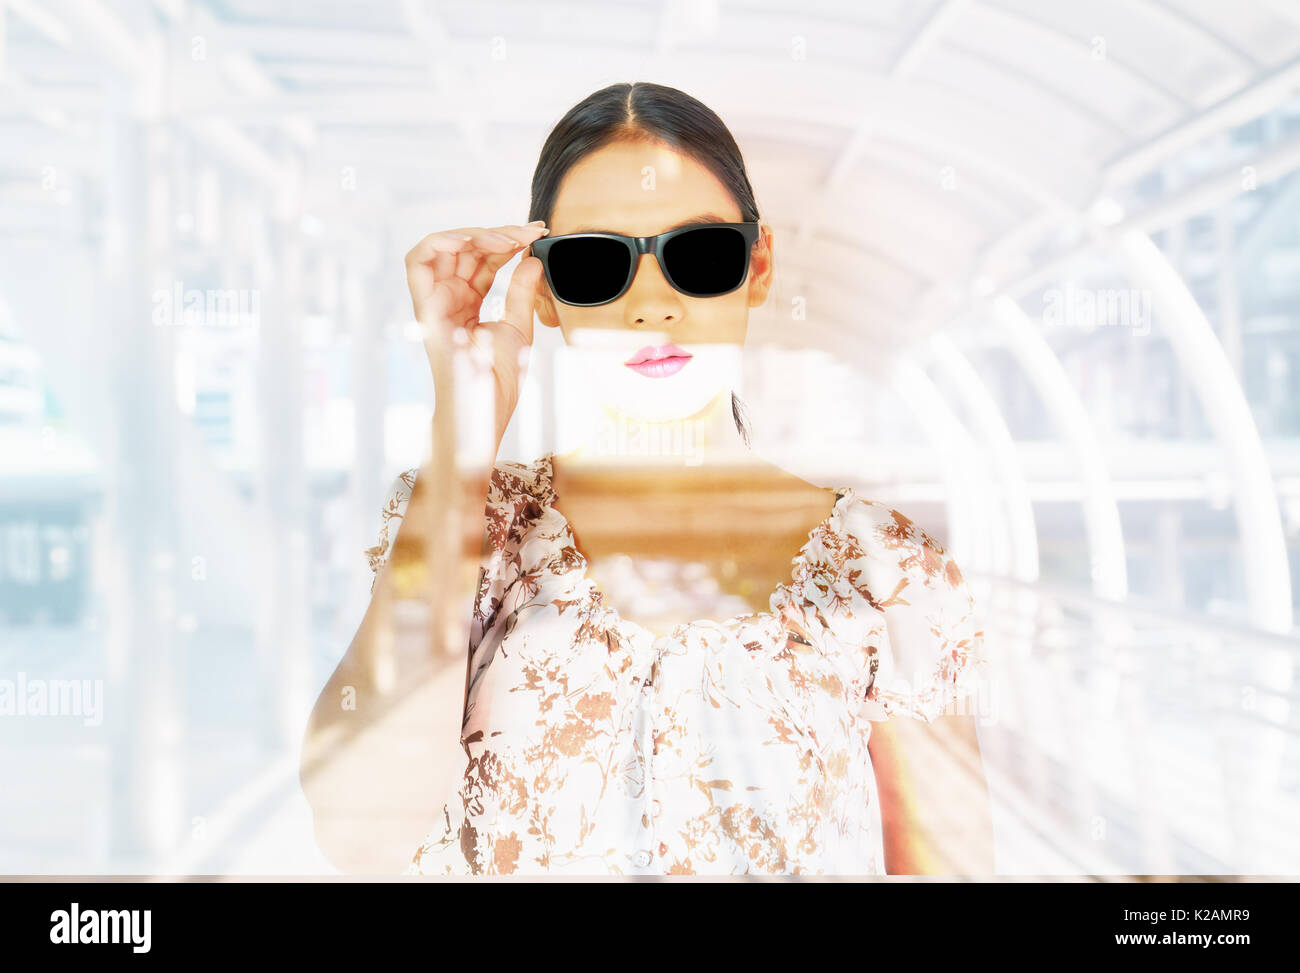 Beautiful woman wearing sunglass on blurred or de focused modern city walkway for background - Stock Image